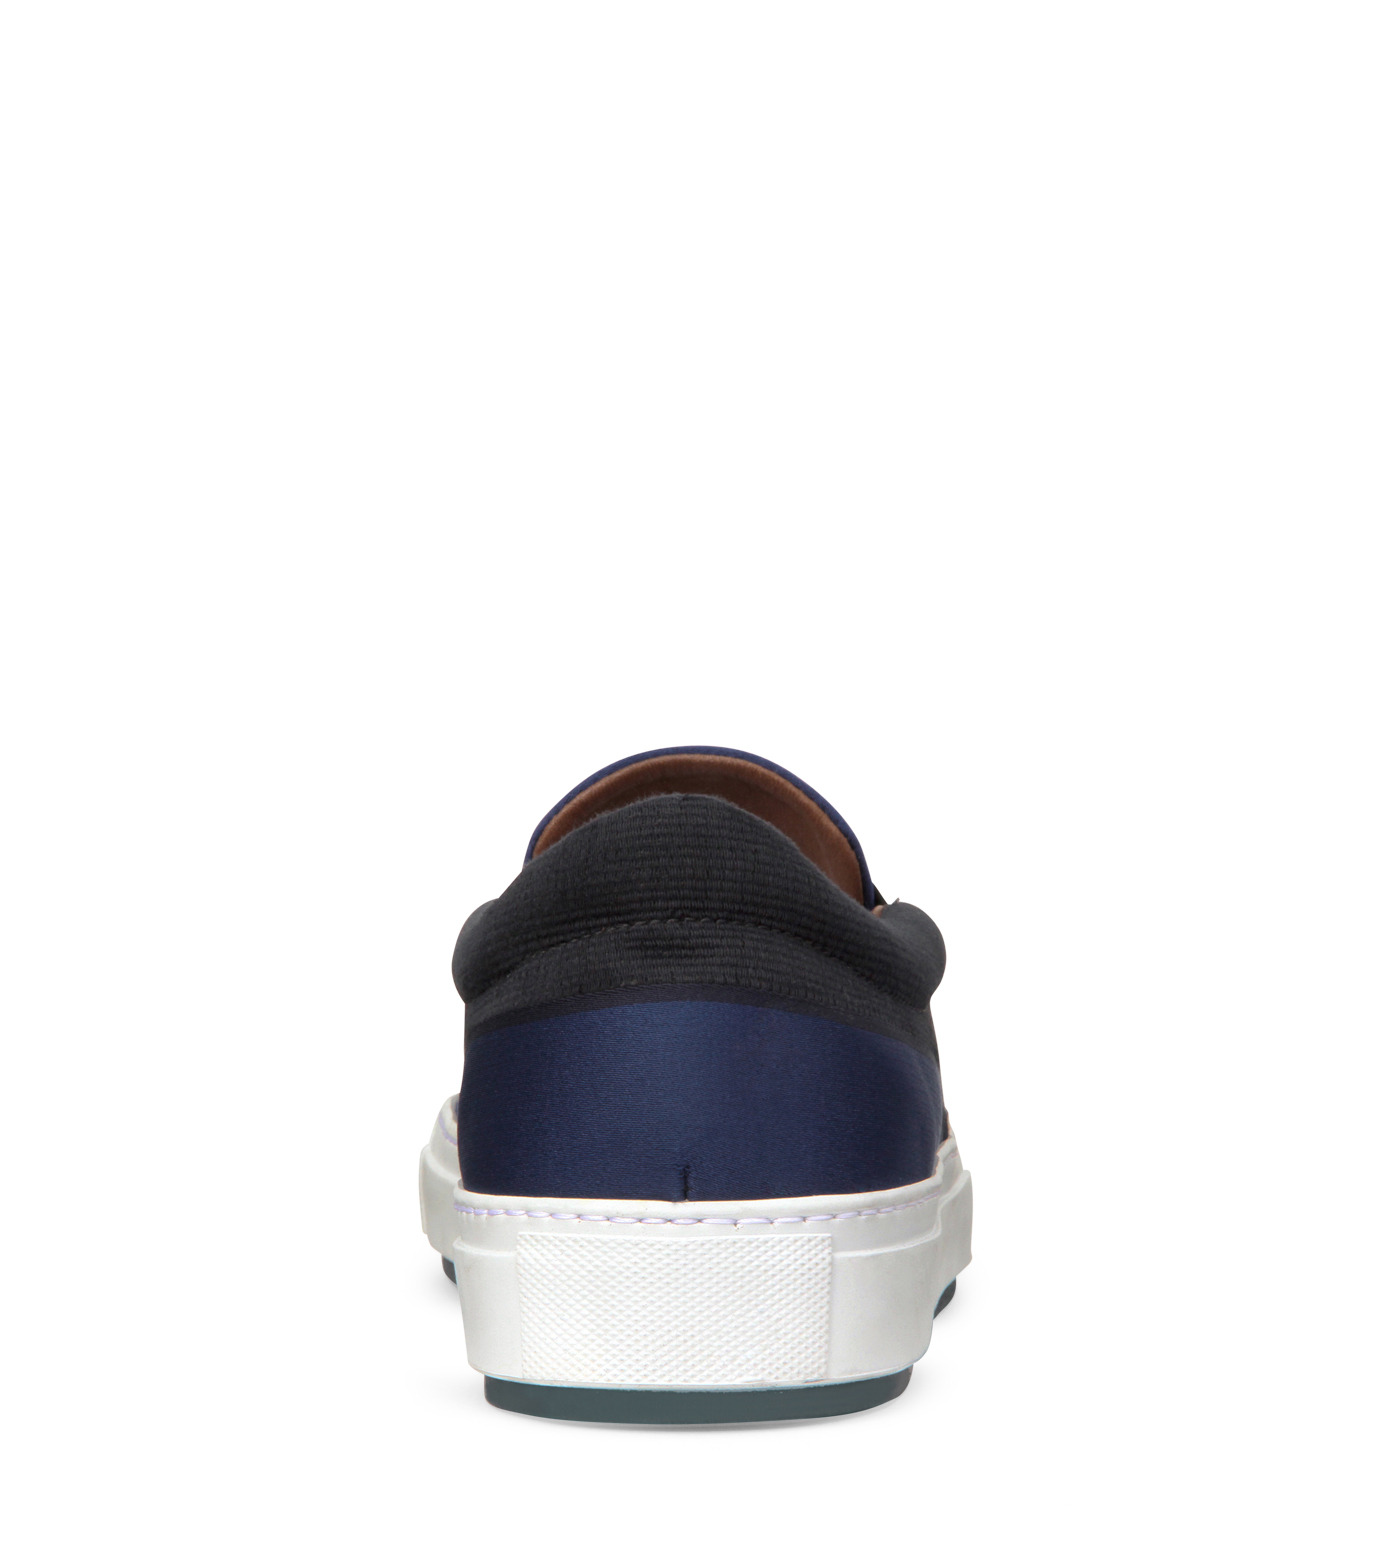 ACNE STUDIOS(アクネ)のSlip on-BLACK-HANS-COTTON-13 拡大詳細画像3